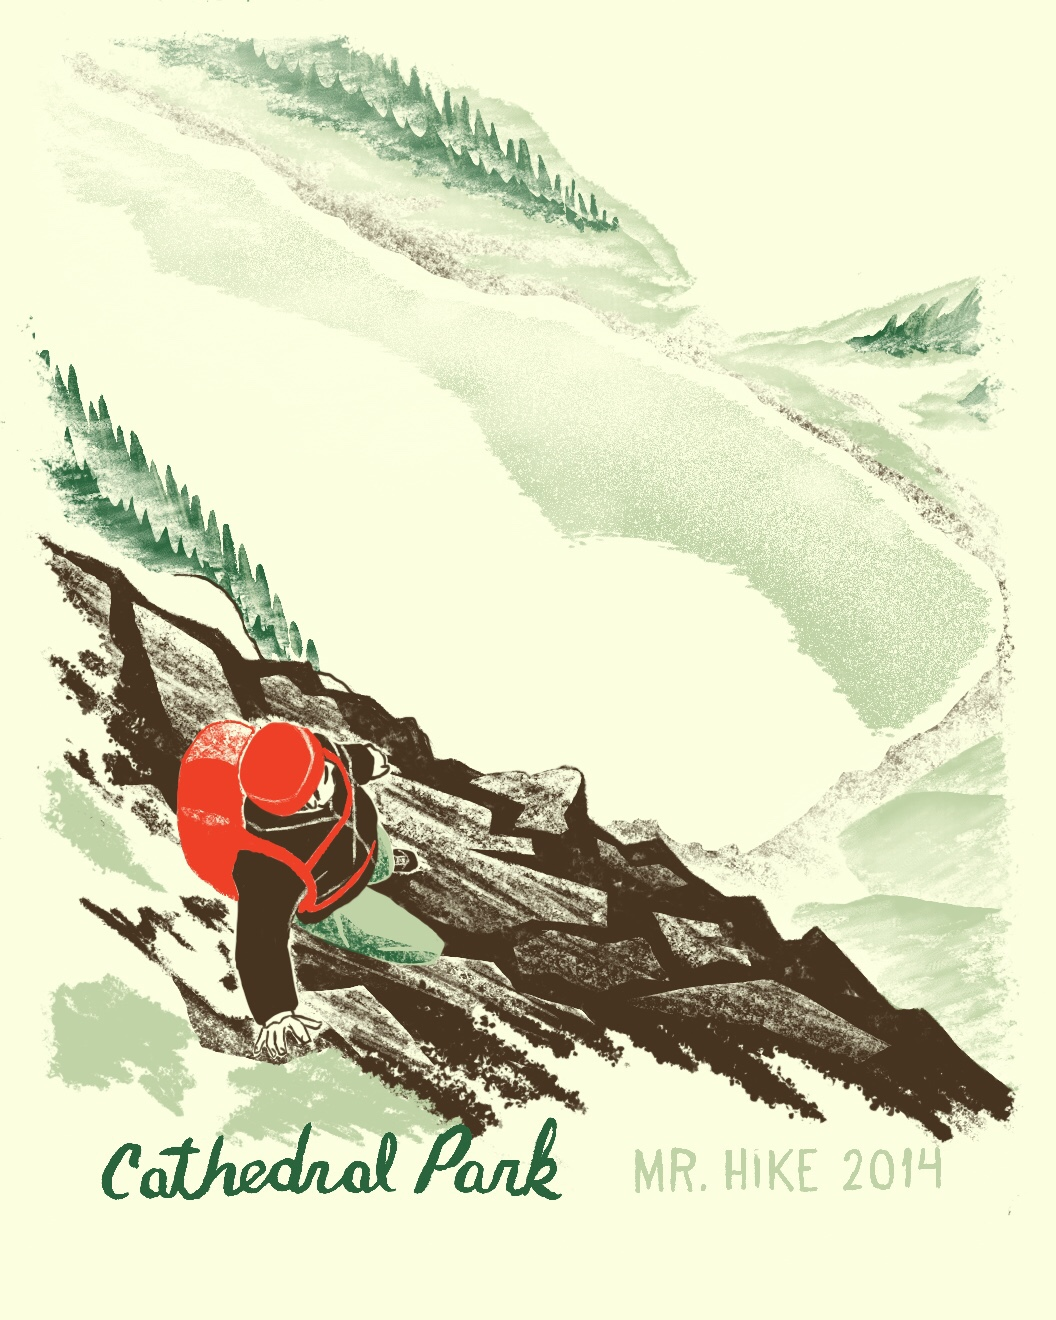 Cathedral Park hiking trip illustration